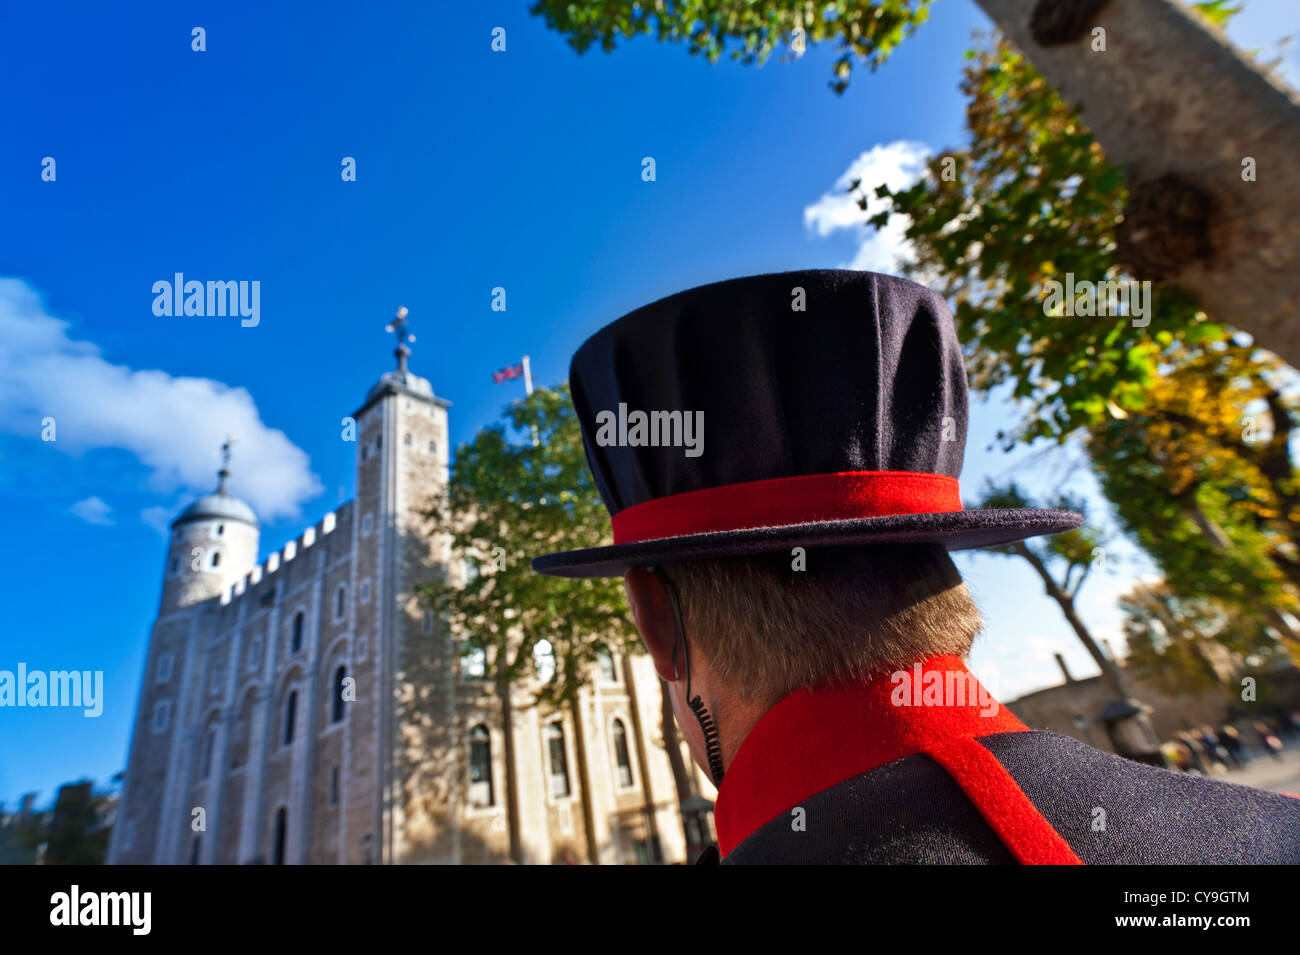 Yeoman Warder ( Beefeater) with security earpiece on duty at The Tower of London City of London UK - Stock Image